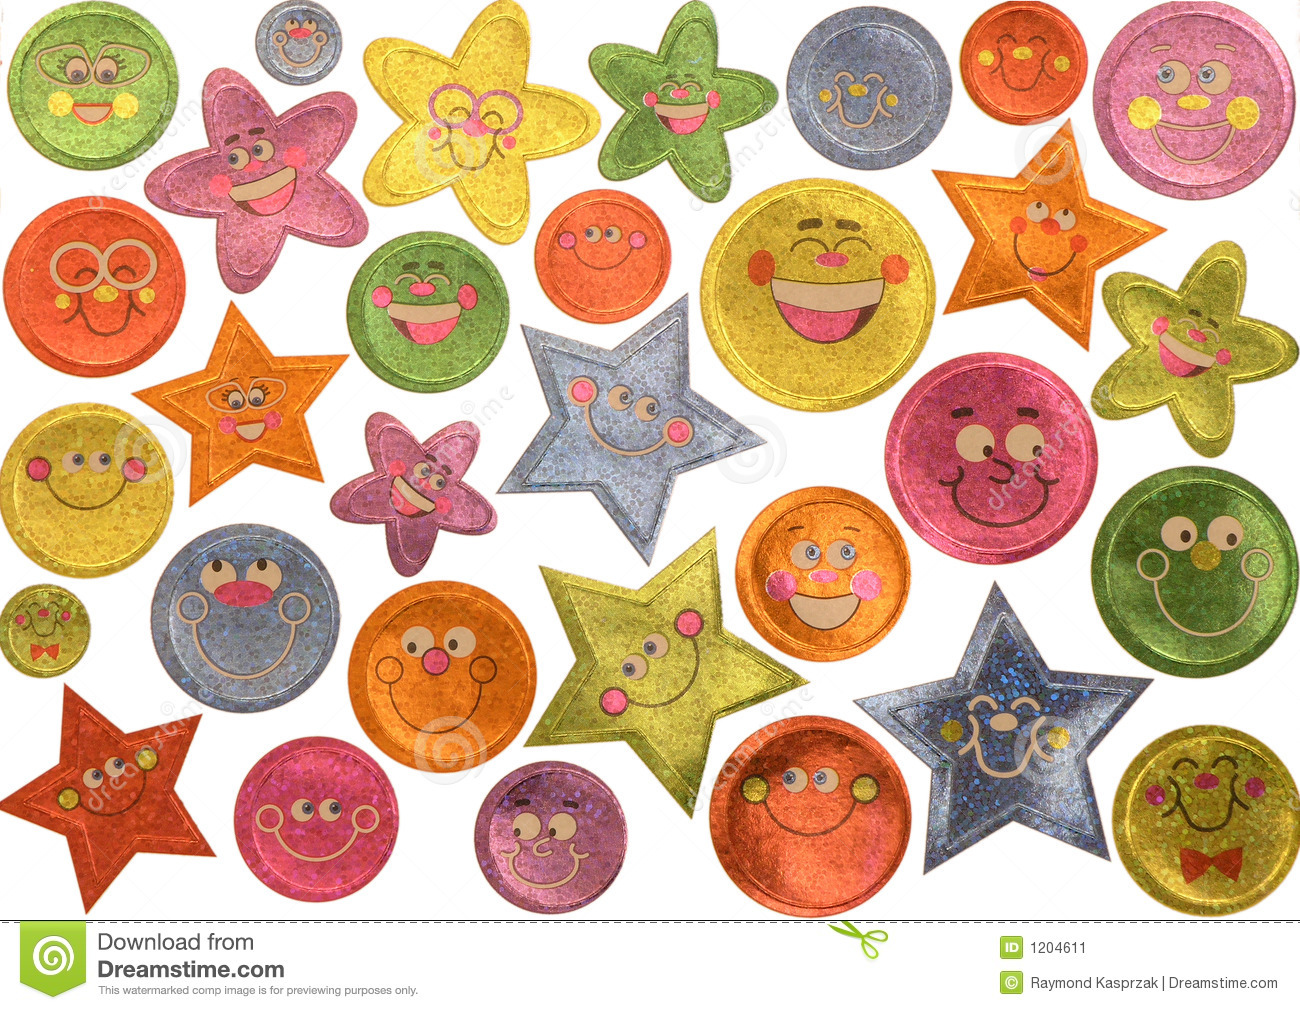 Smiley Face Stickers Stock Image - Image: 1204611